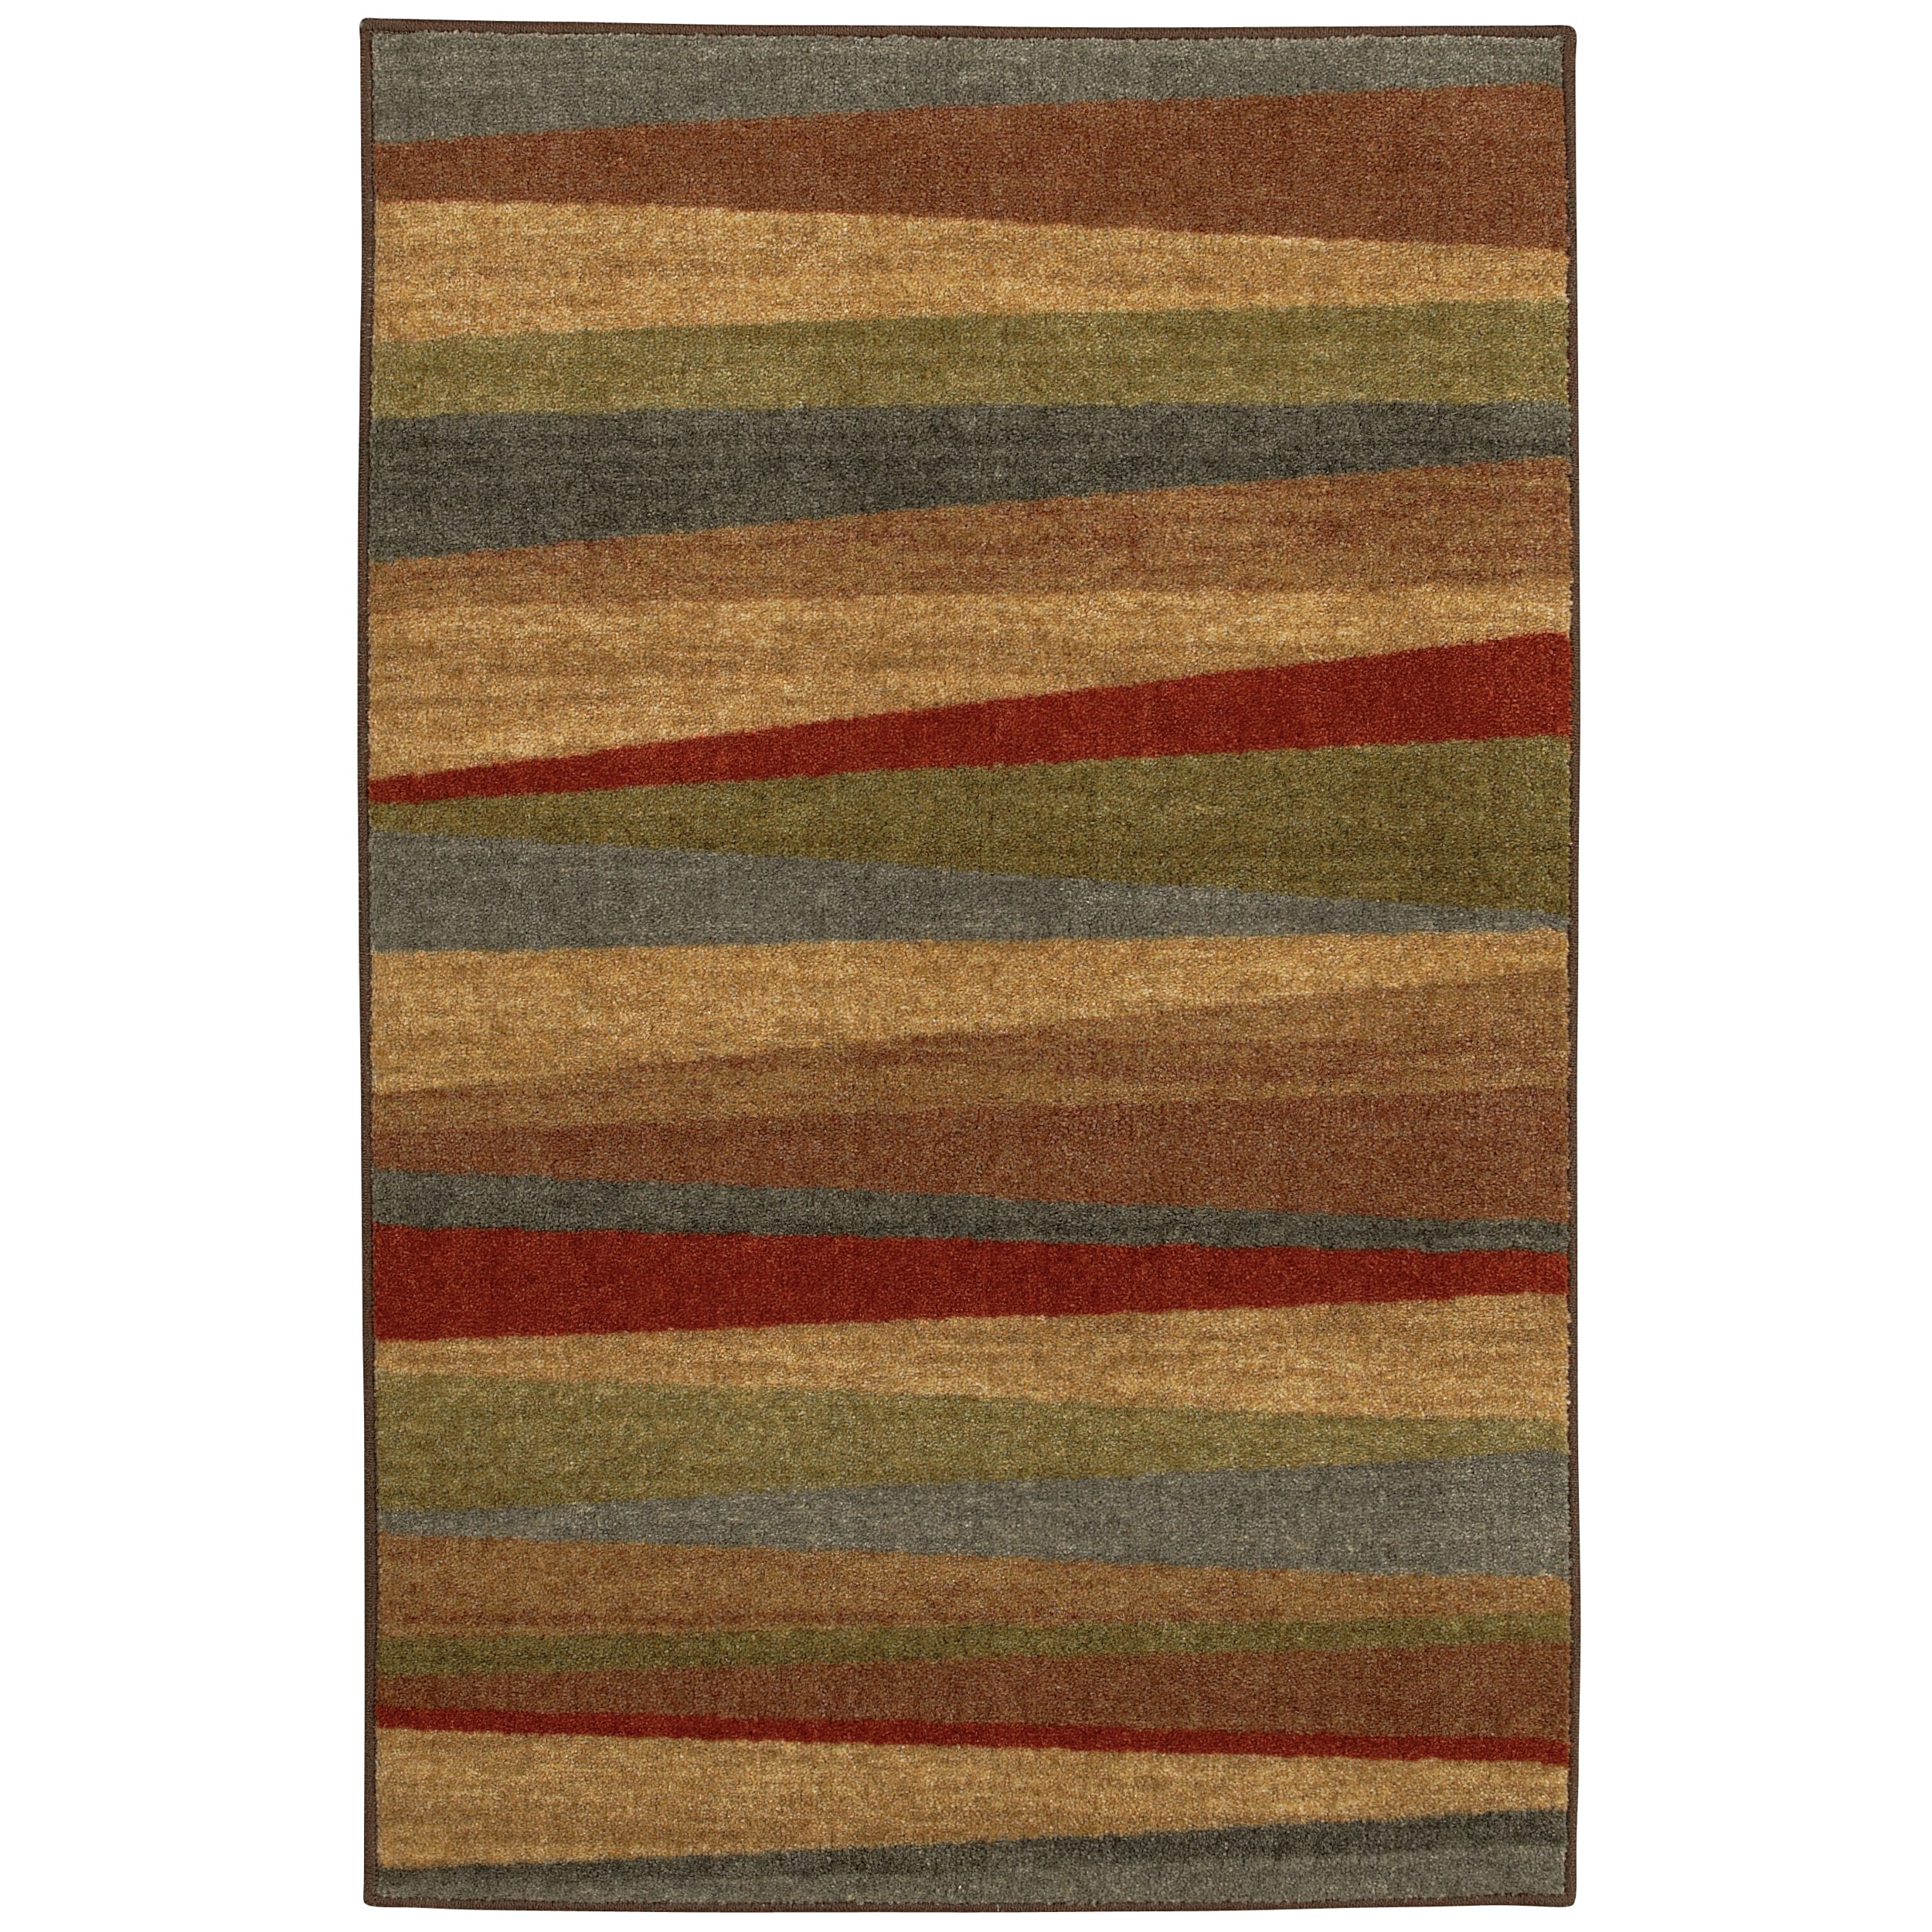 New Wave Mayan Sunset Rug 2 6 X 3 10